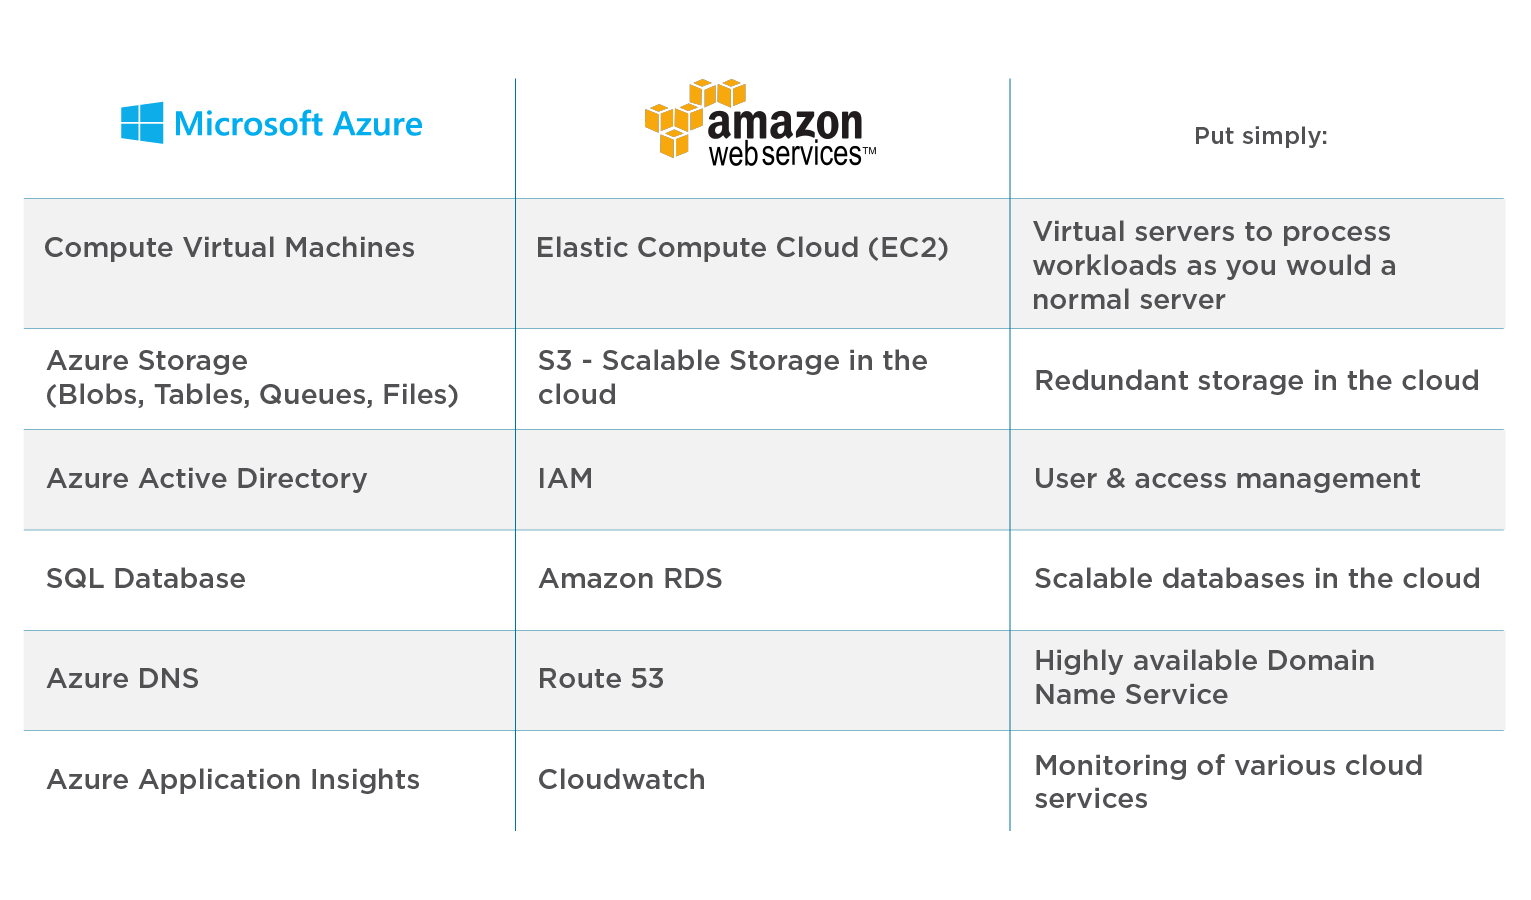 Comparison of top cloud products